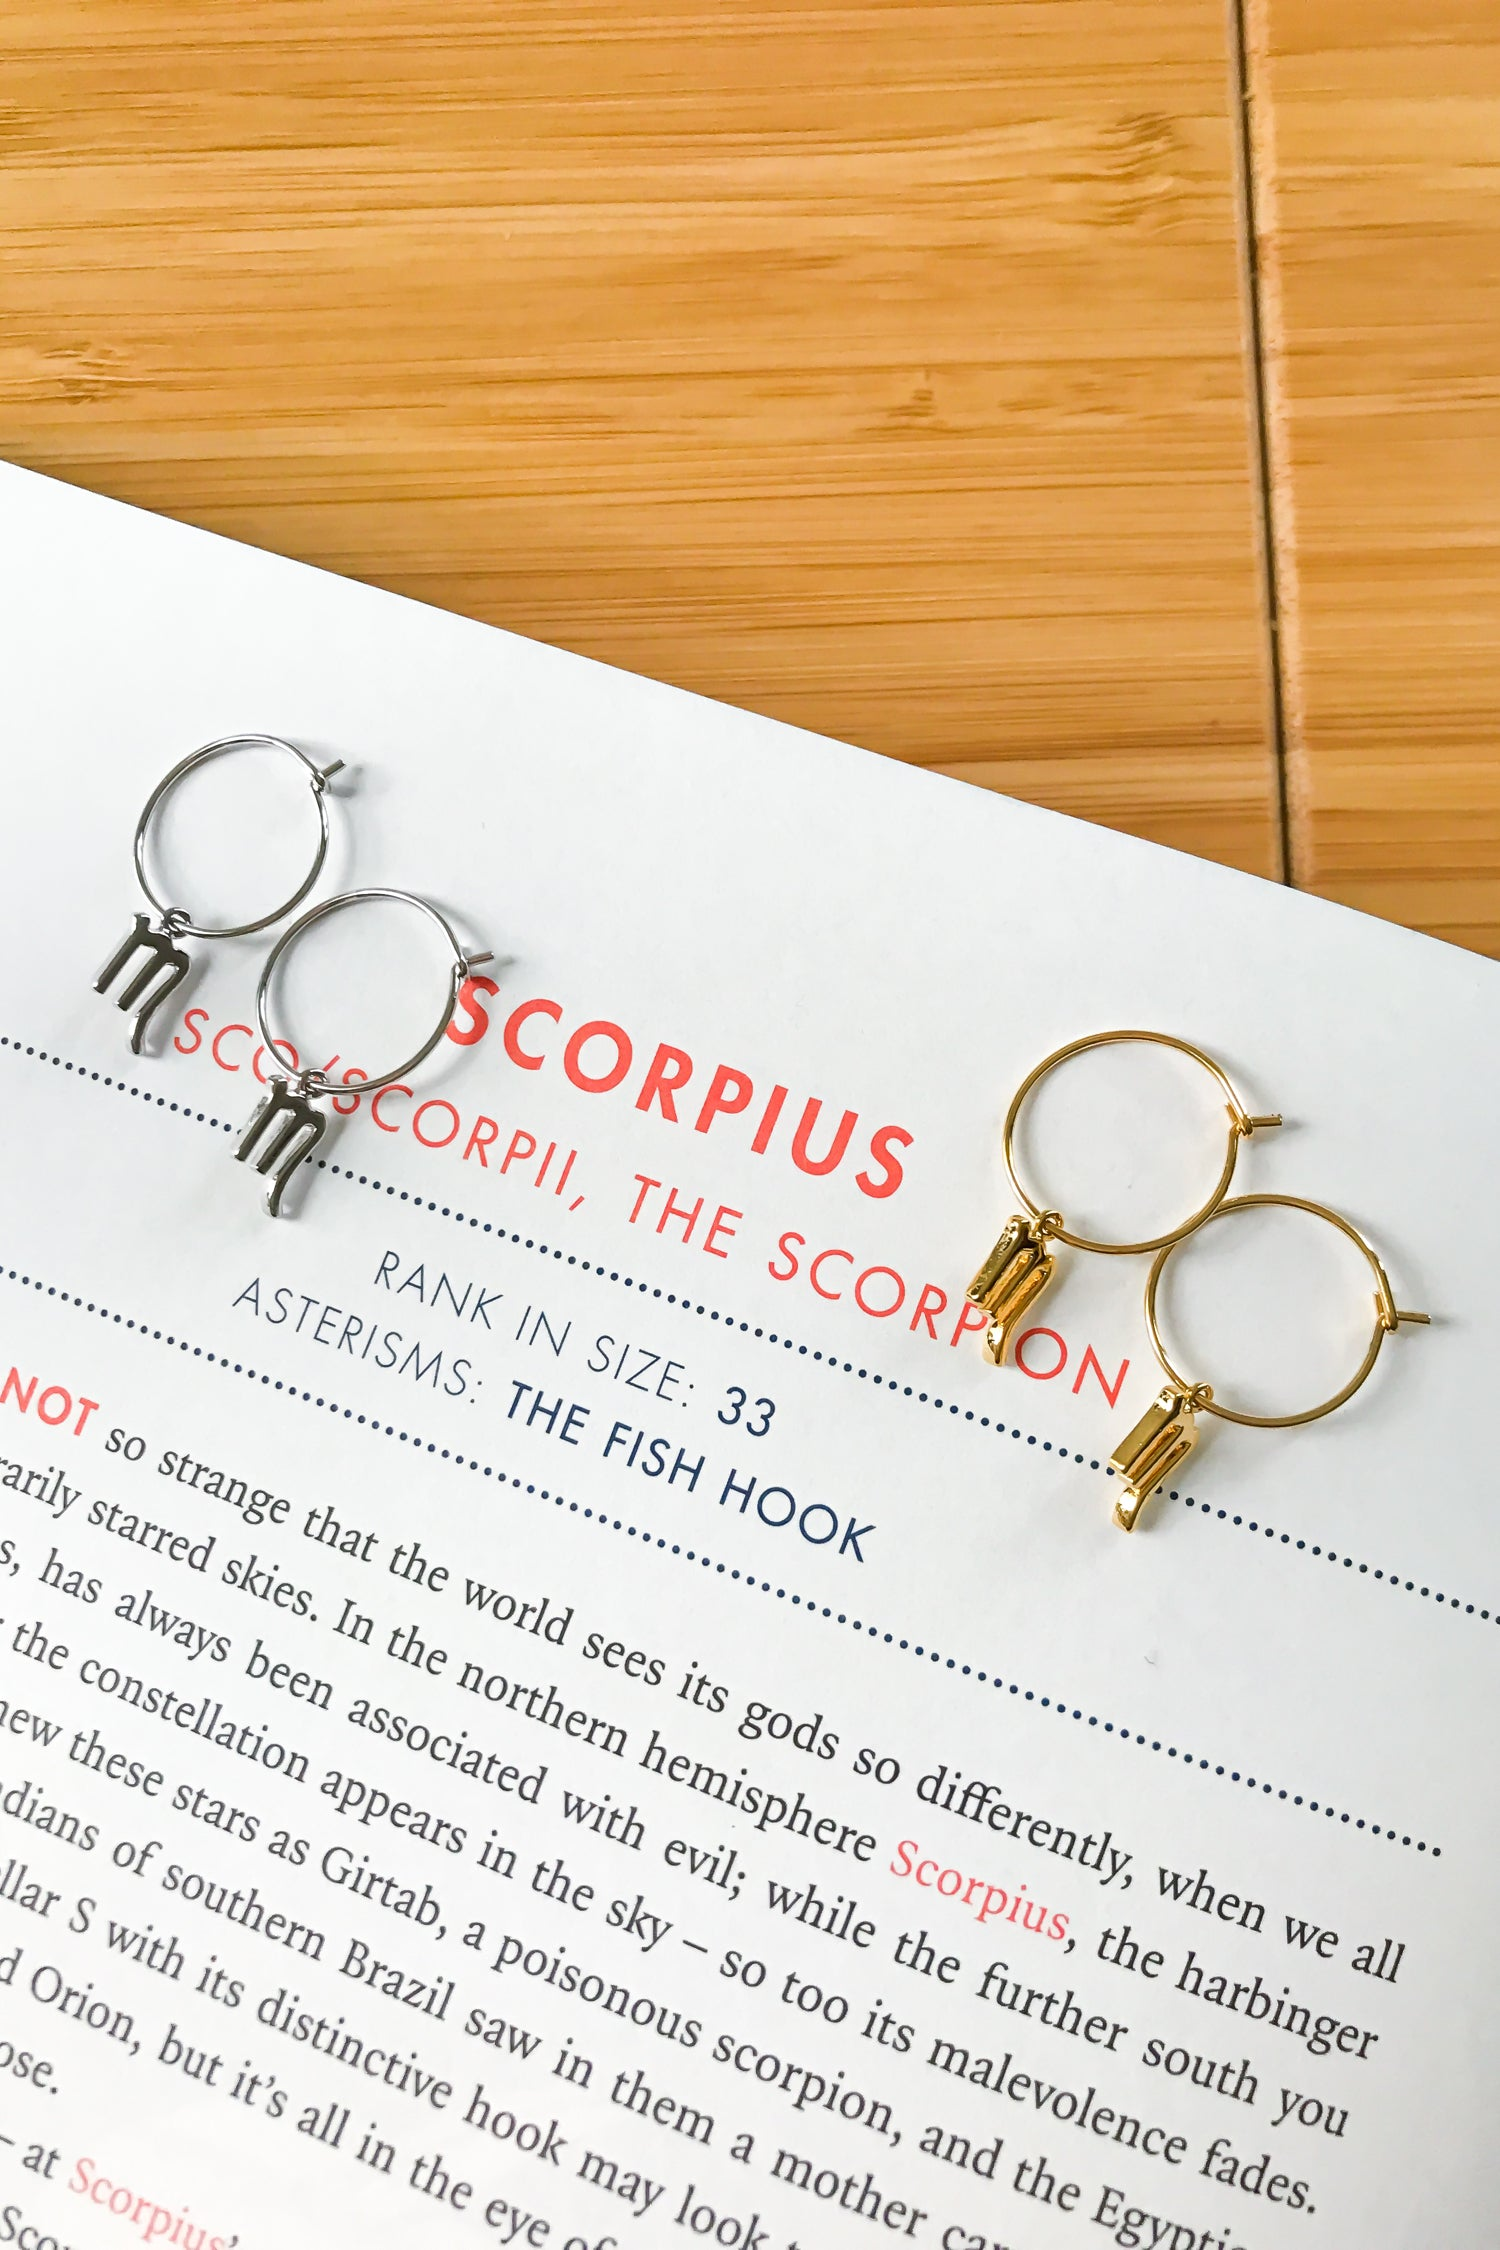 Scorpio mini hoop earrings